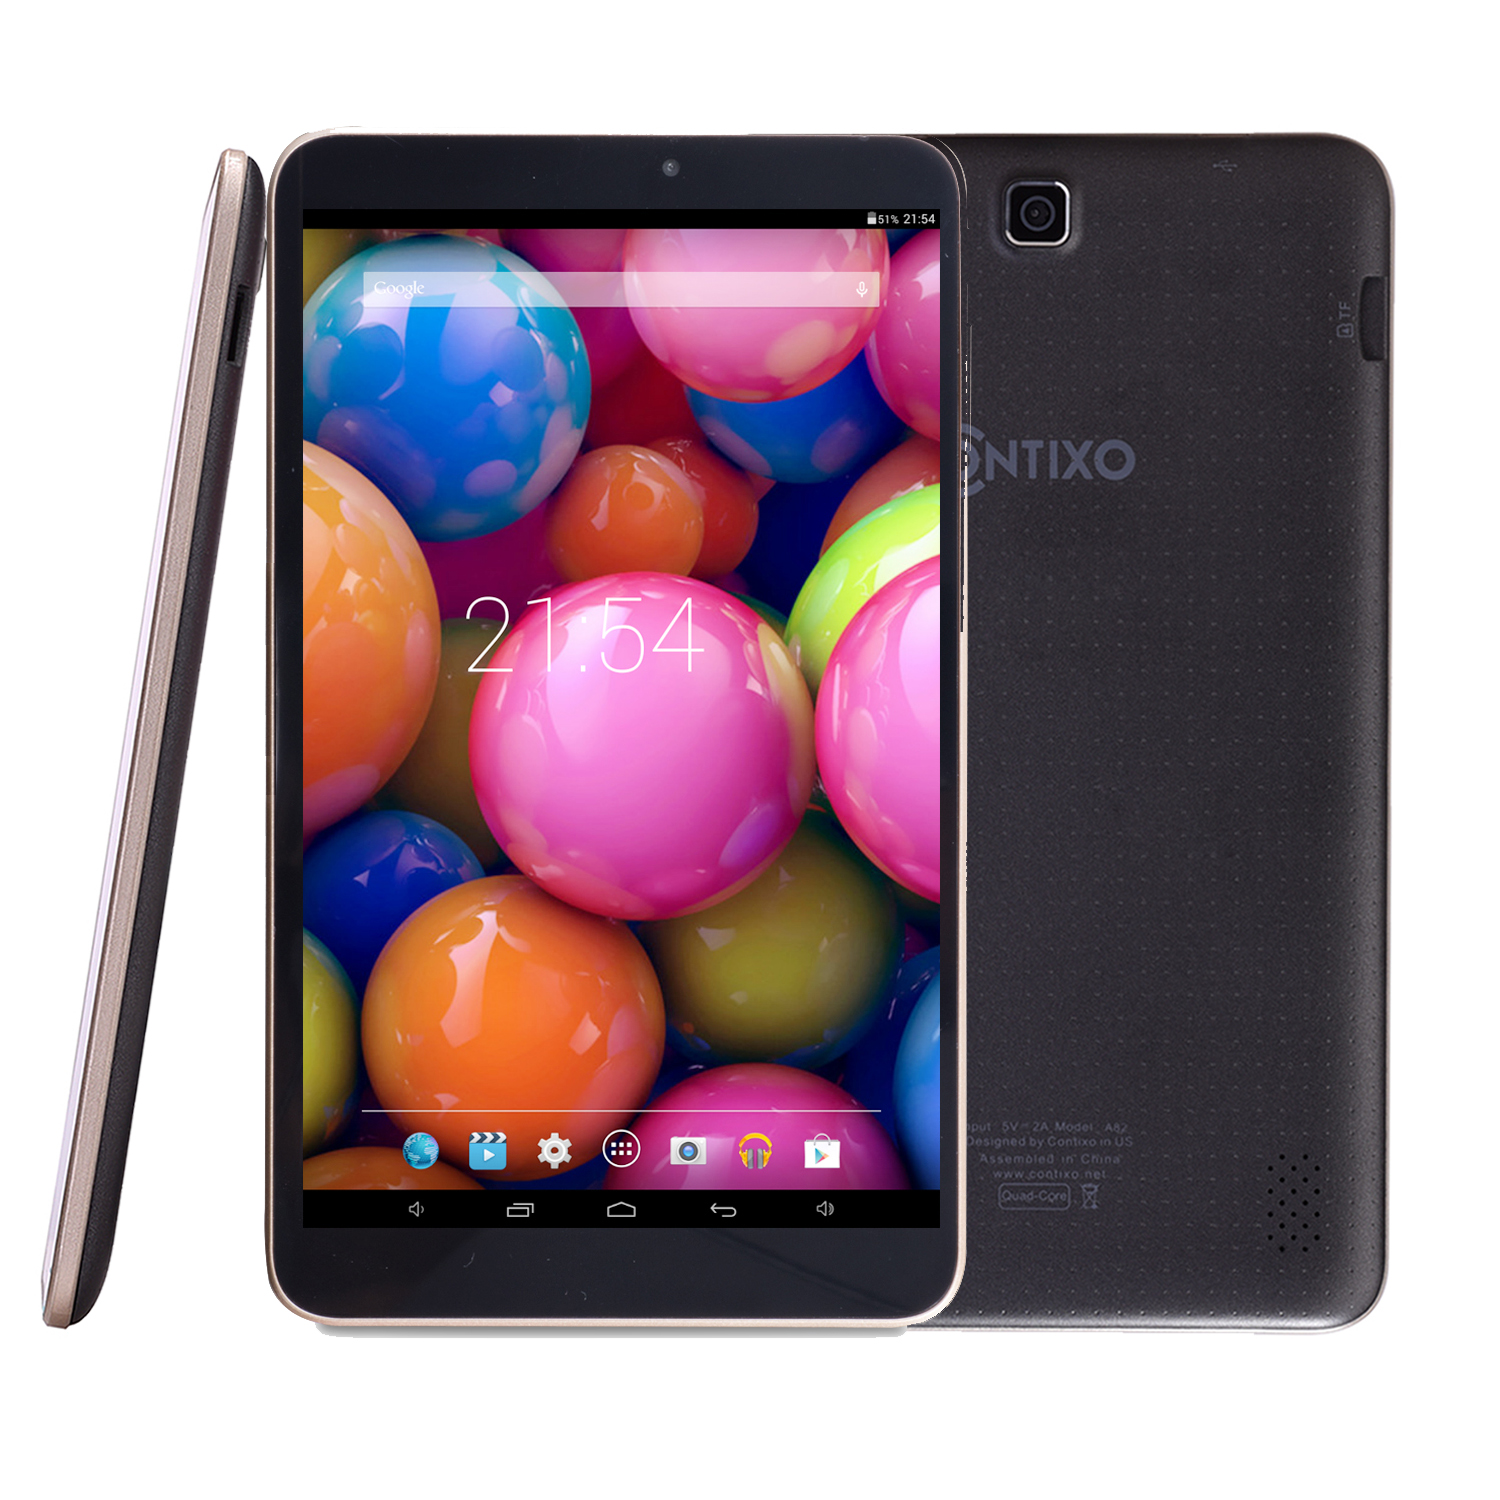 Contixo 8'' Quad Core Android 4.4 Tablet, IPS Screen 1280x800 Display, 1GB Memory, 8GB Nand Flash, Wi-Fi, Bluetooth (Black)